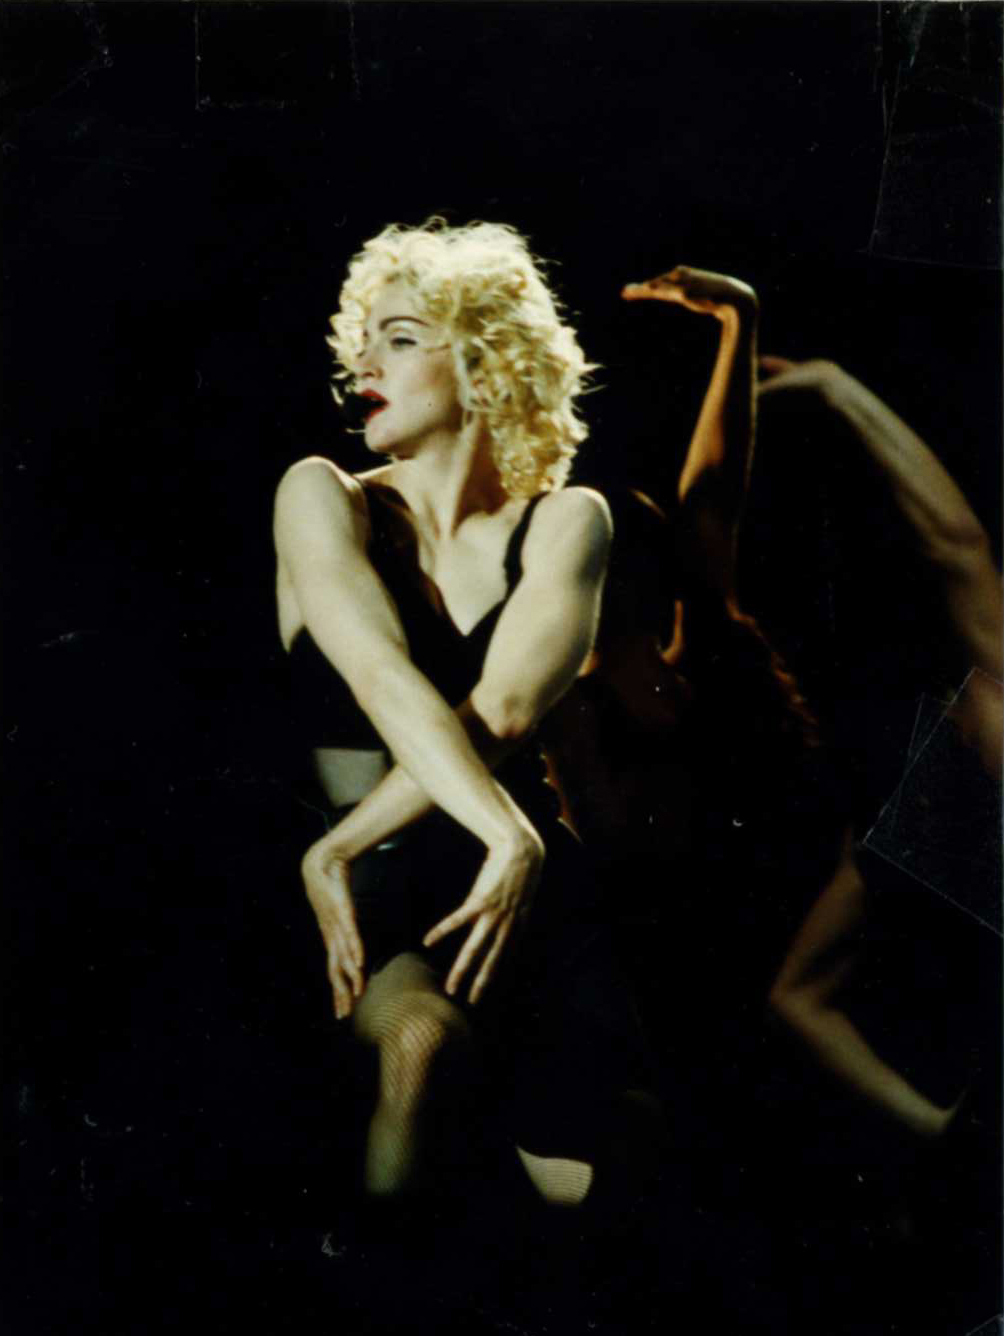 The madonna collection 23 years of madonnas vogue 23 years of madonnas vogue voltagebd Image collections